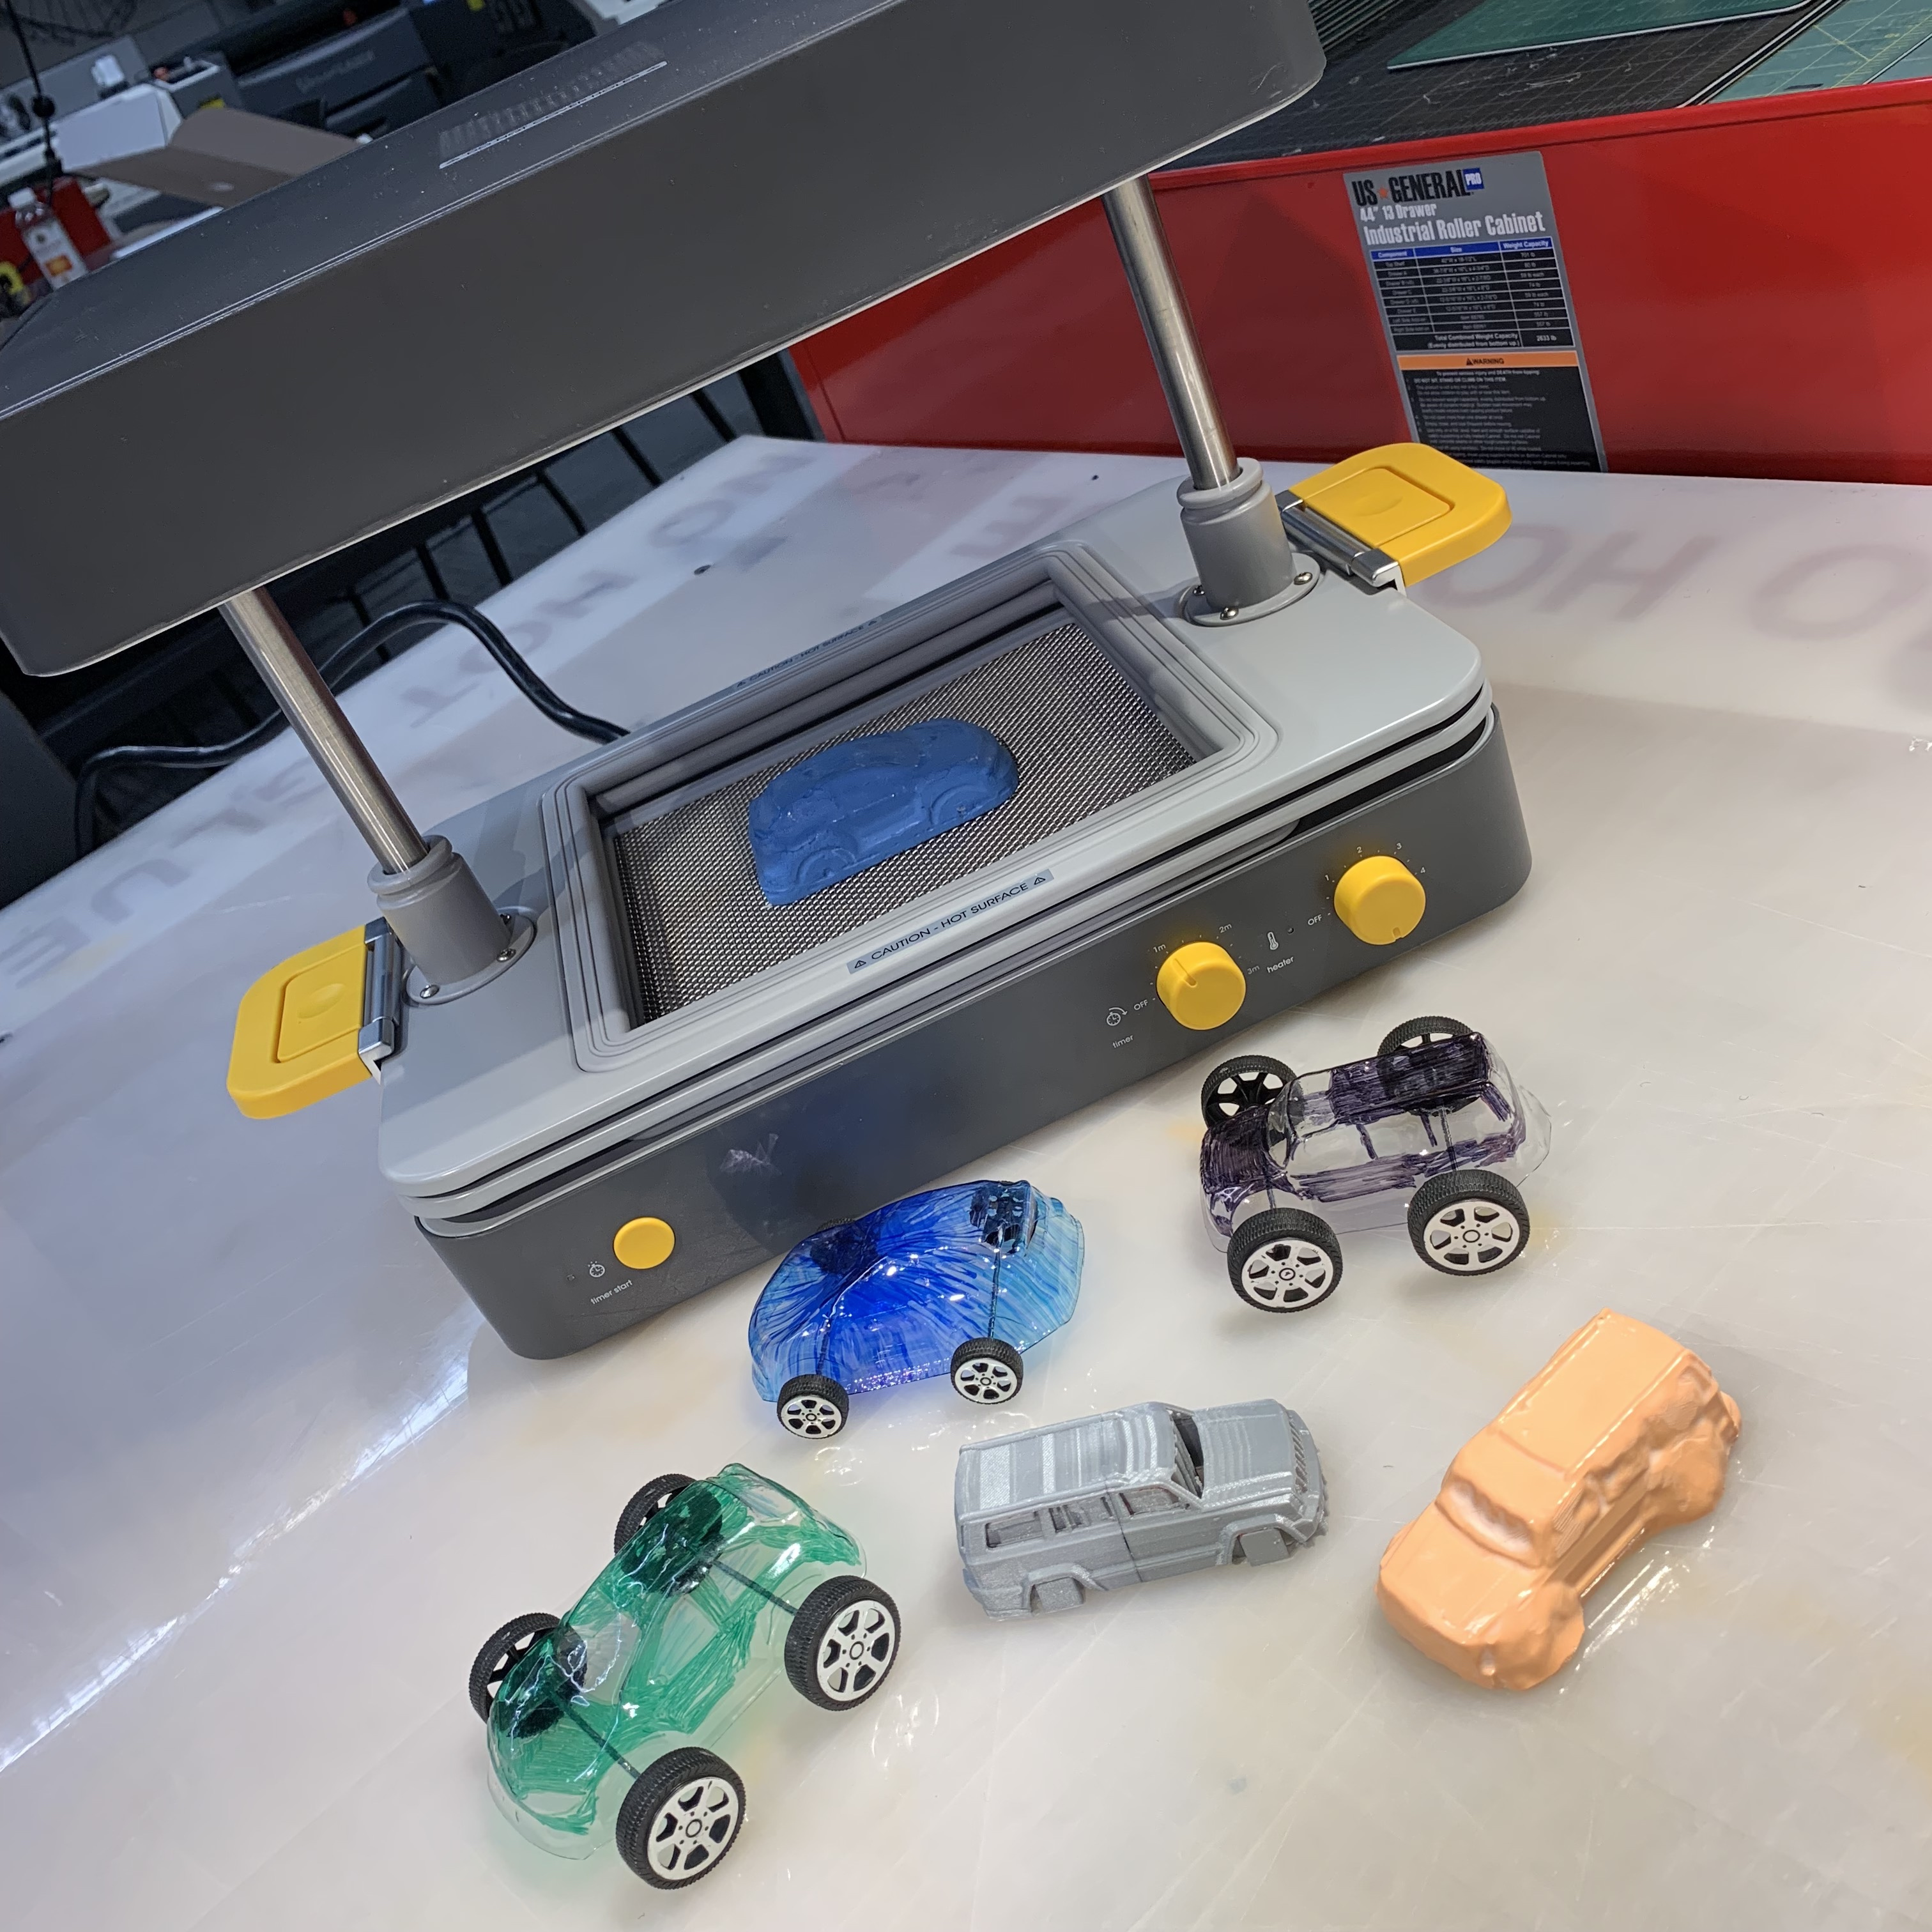 Resin Car Prototypes Designed with Desktop Vacuum Former, the FormBox